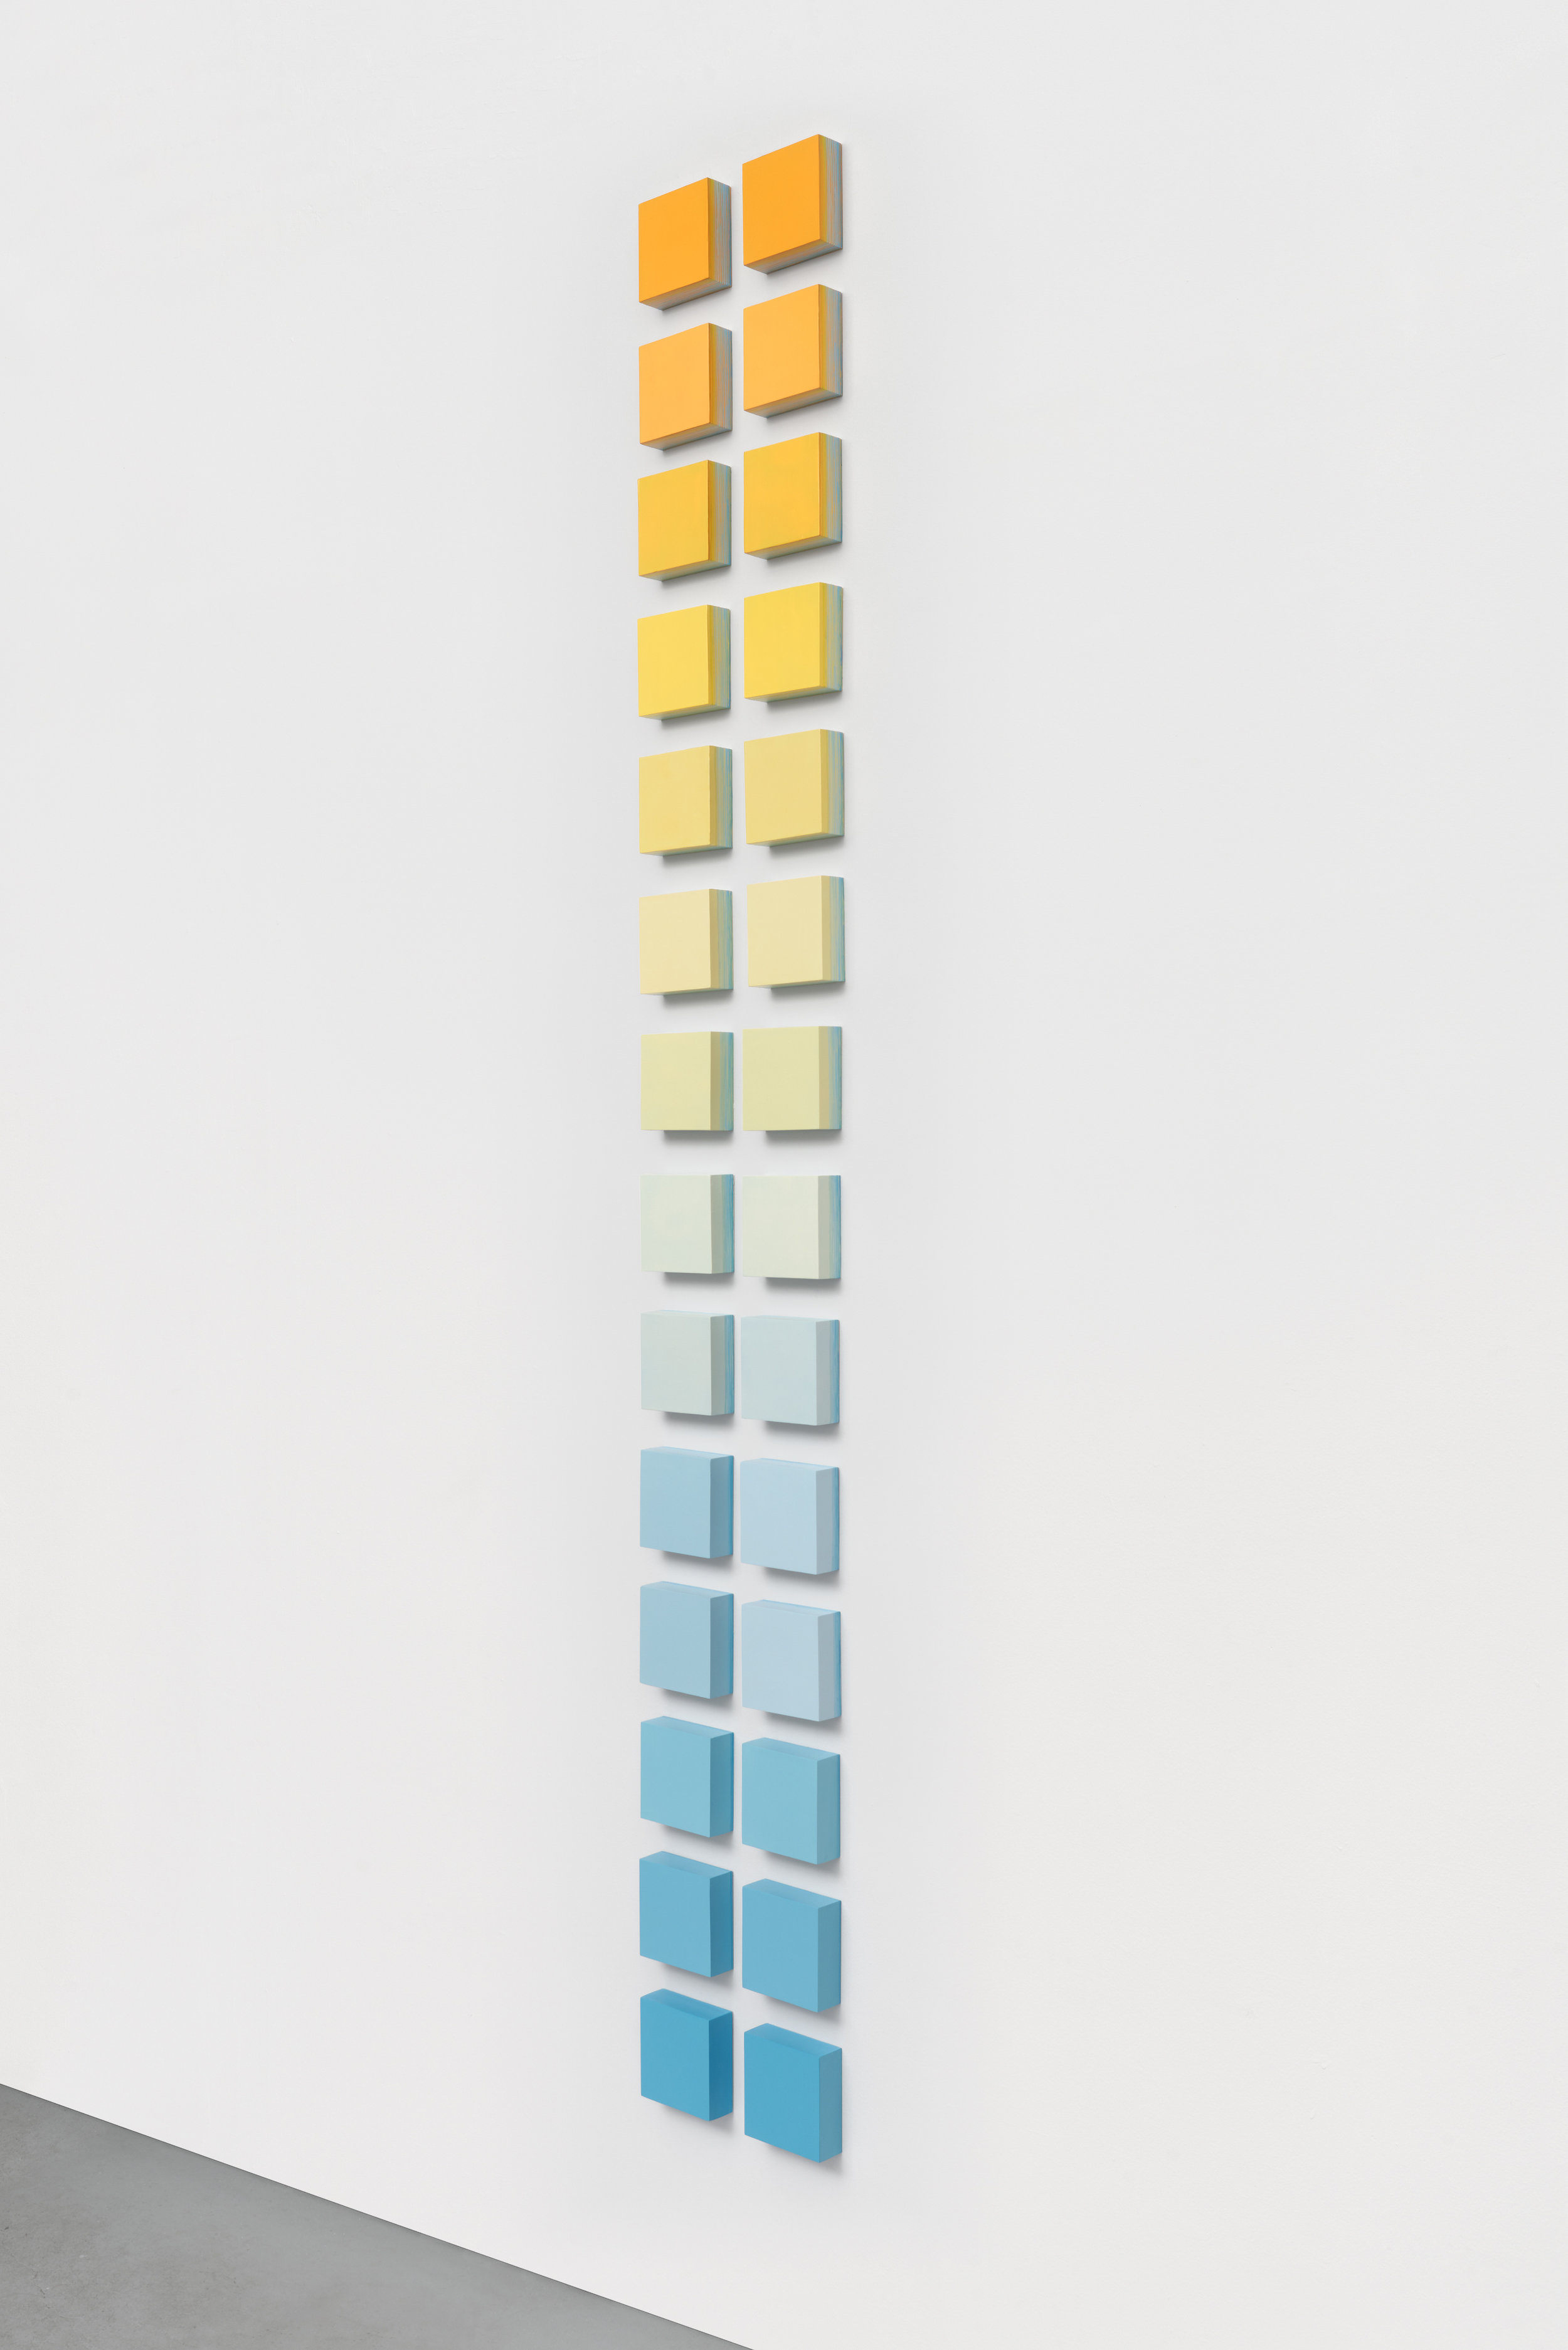 Marigold Ladder, SIDE VIEW, 2016, acrylic, phosphorescent and interference color on 28 5x5x2 inch panels, 96x12x2 inches overall